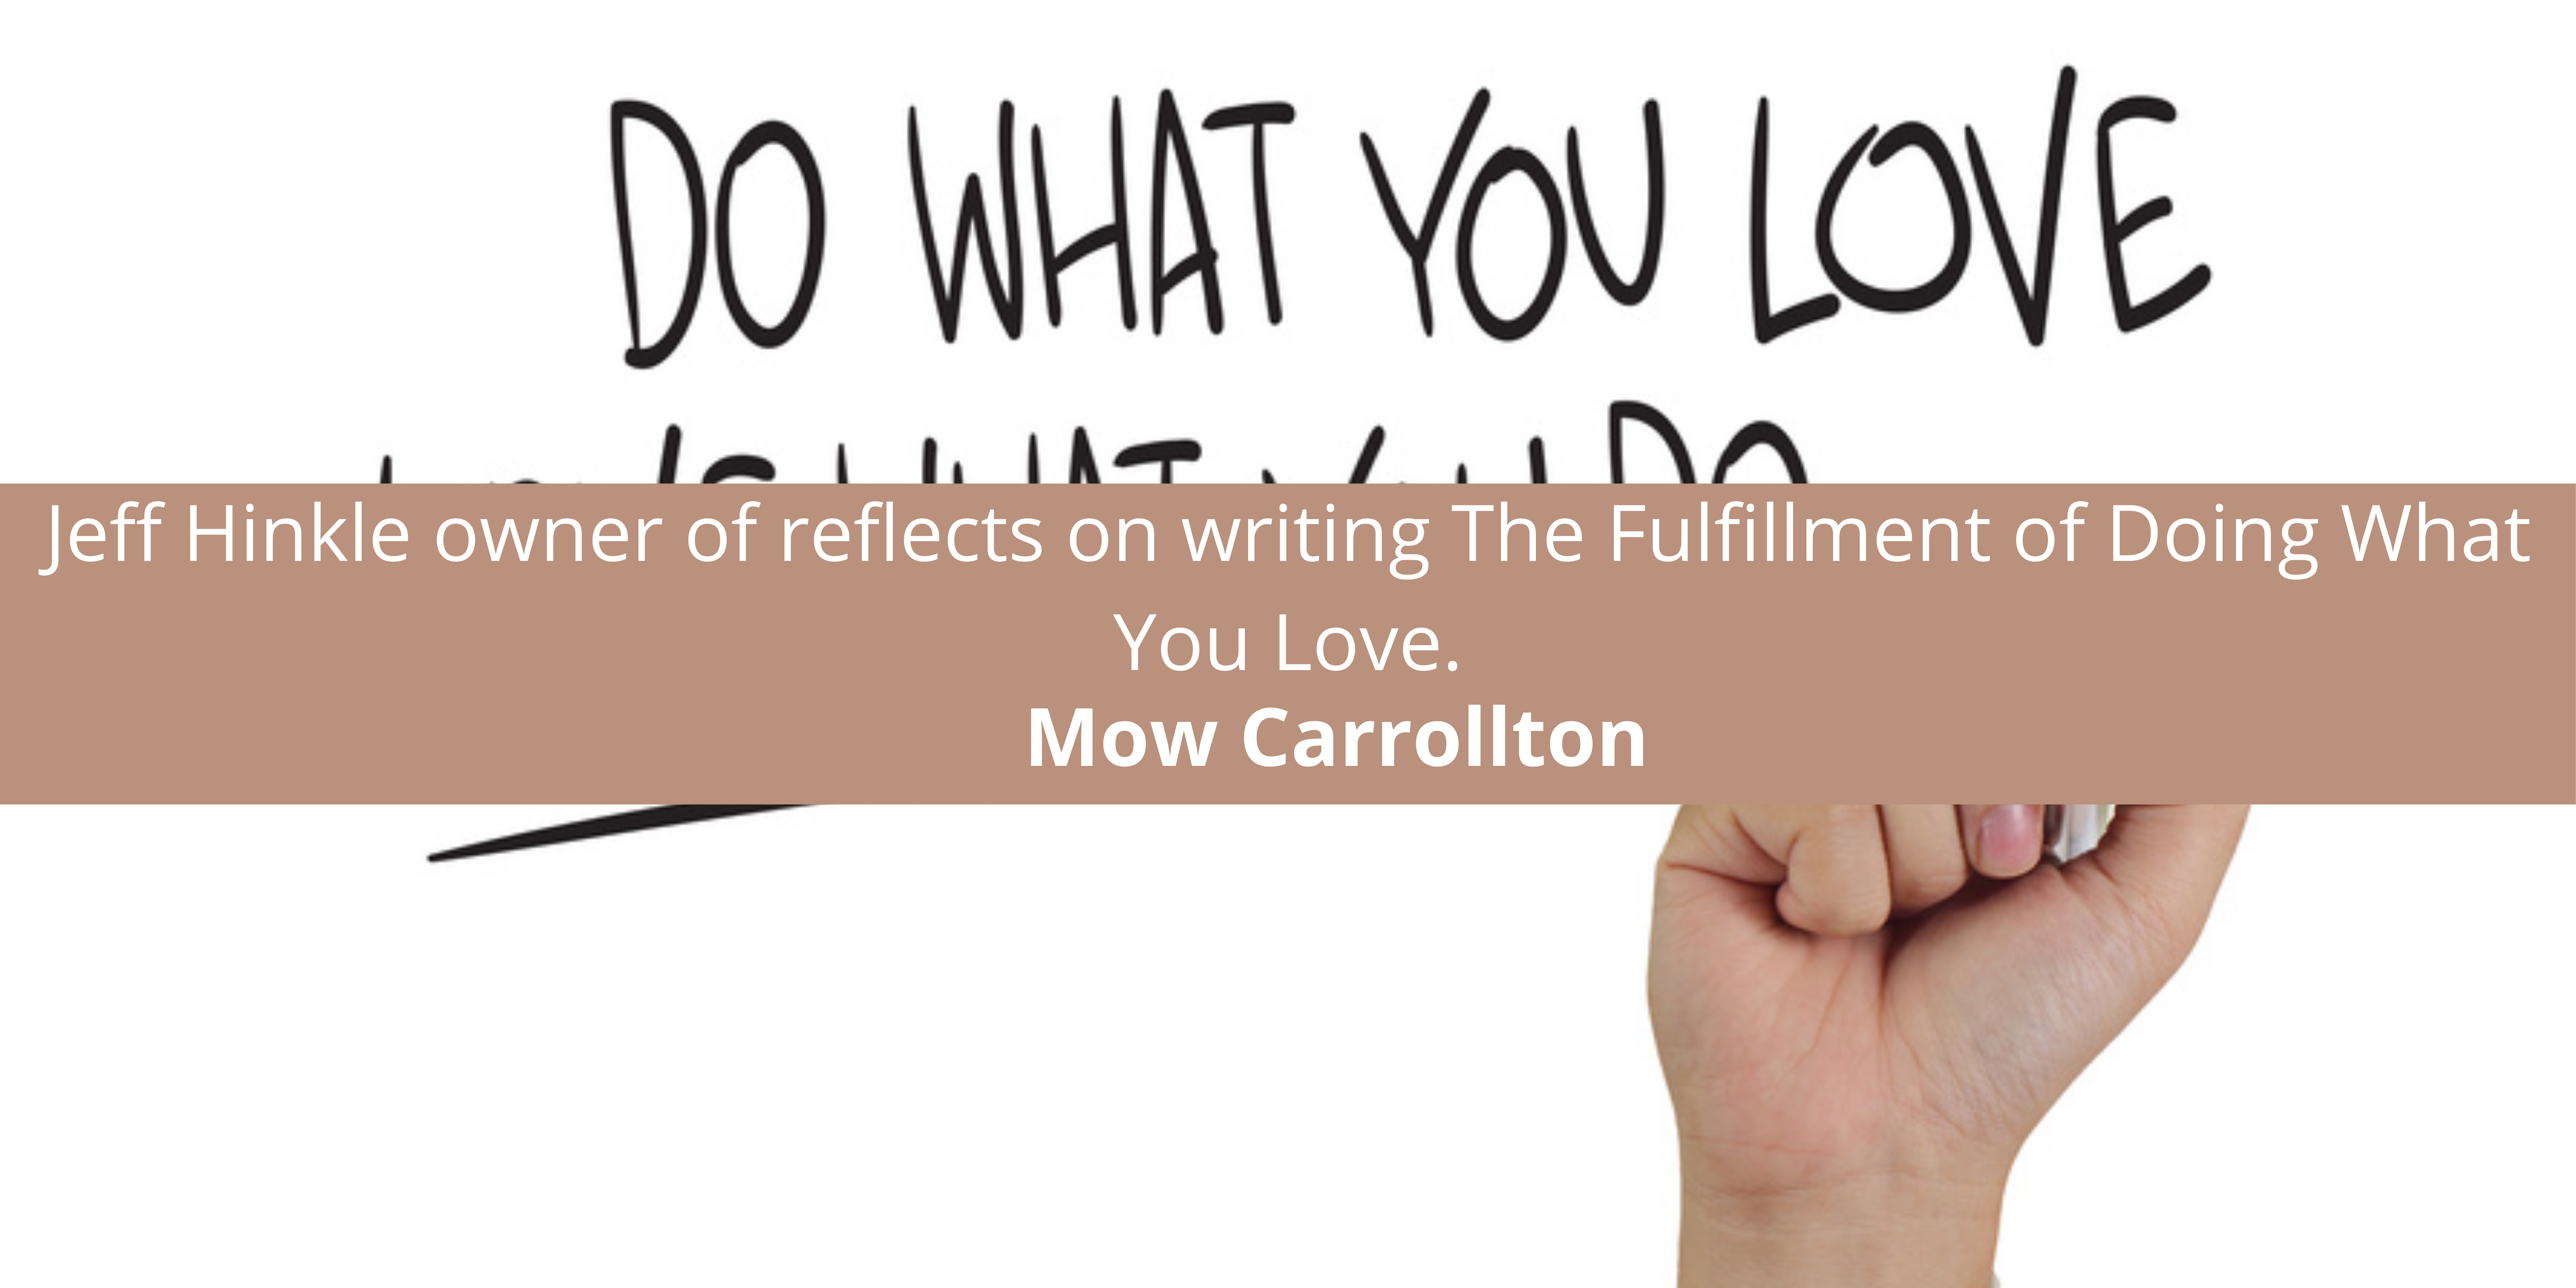 Mow Carrollton Jeff Hinkle owner of reflects on writing The Fulfillment of